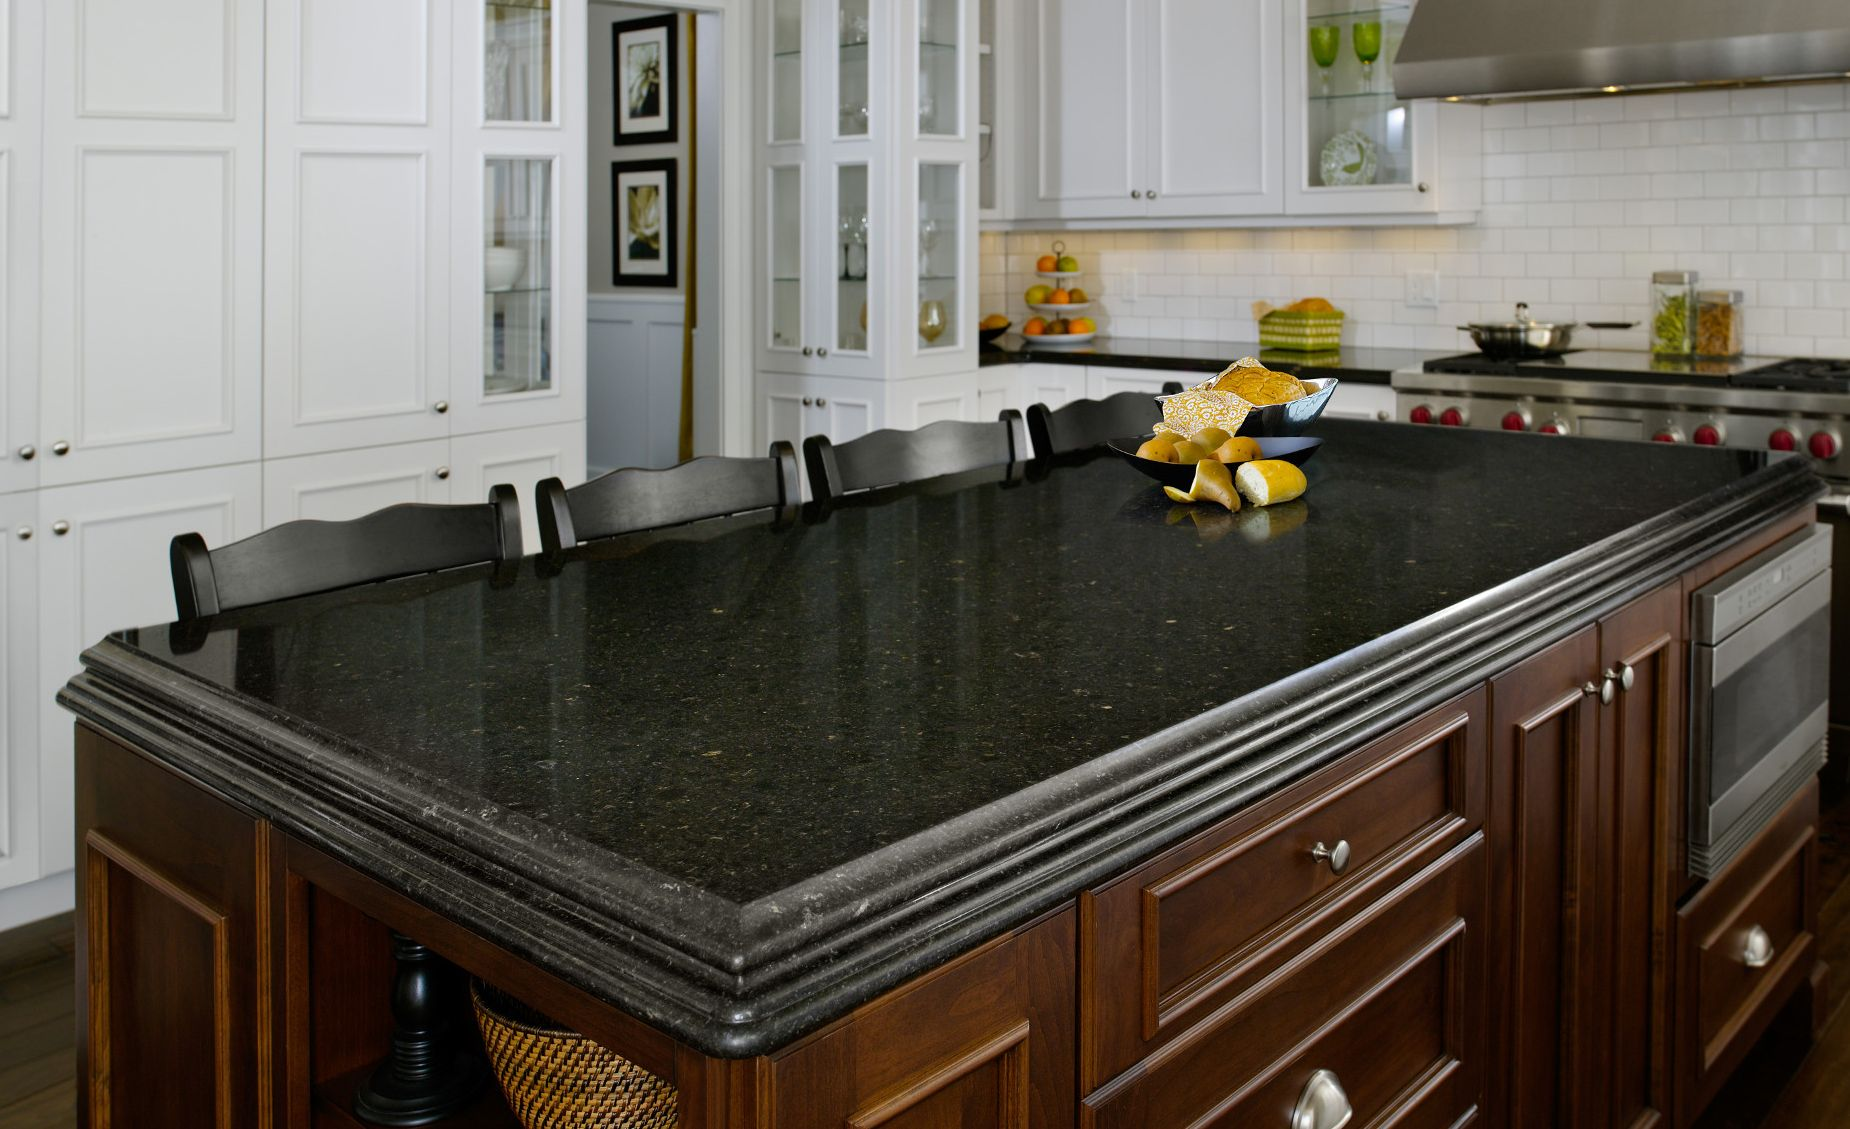 Cambria Blackwood offers a sophisticated alternative to black granite in this traditional kitchen.